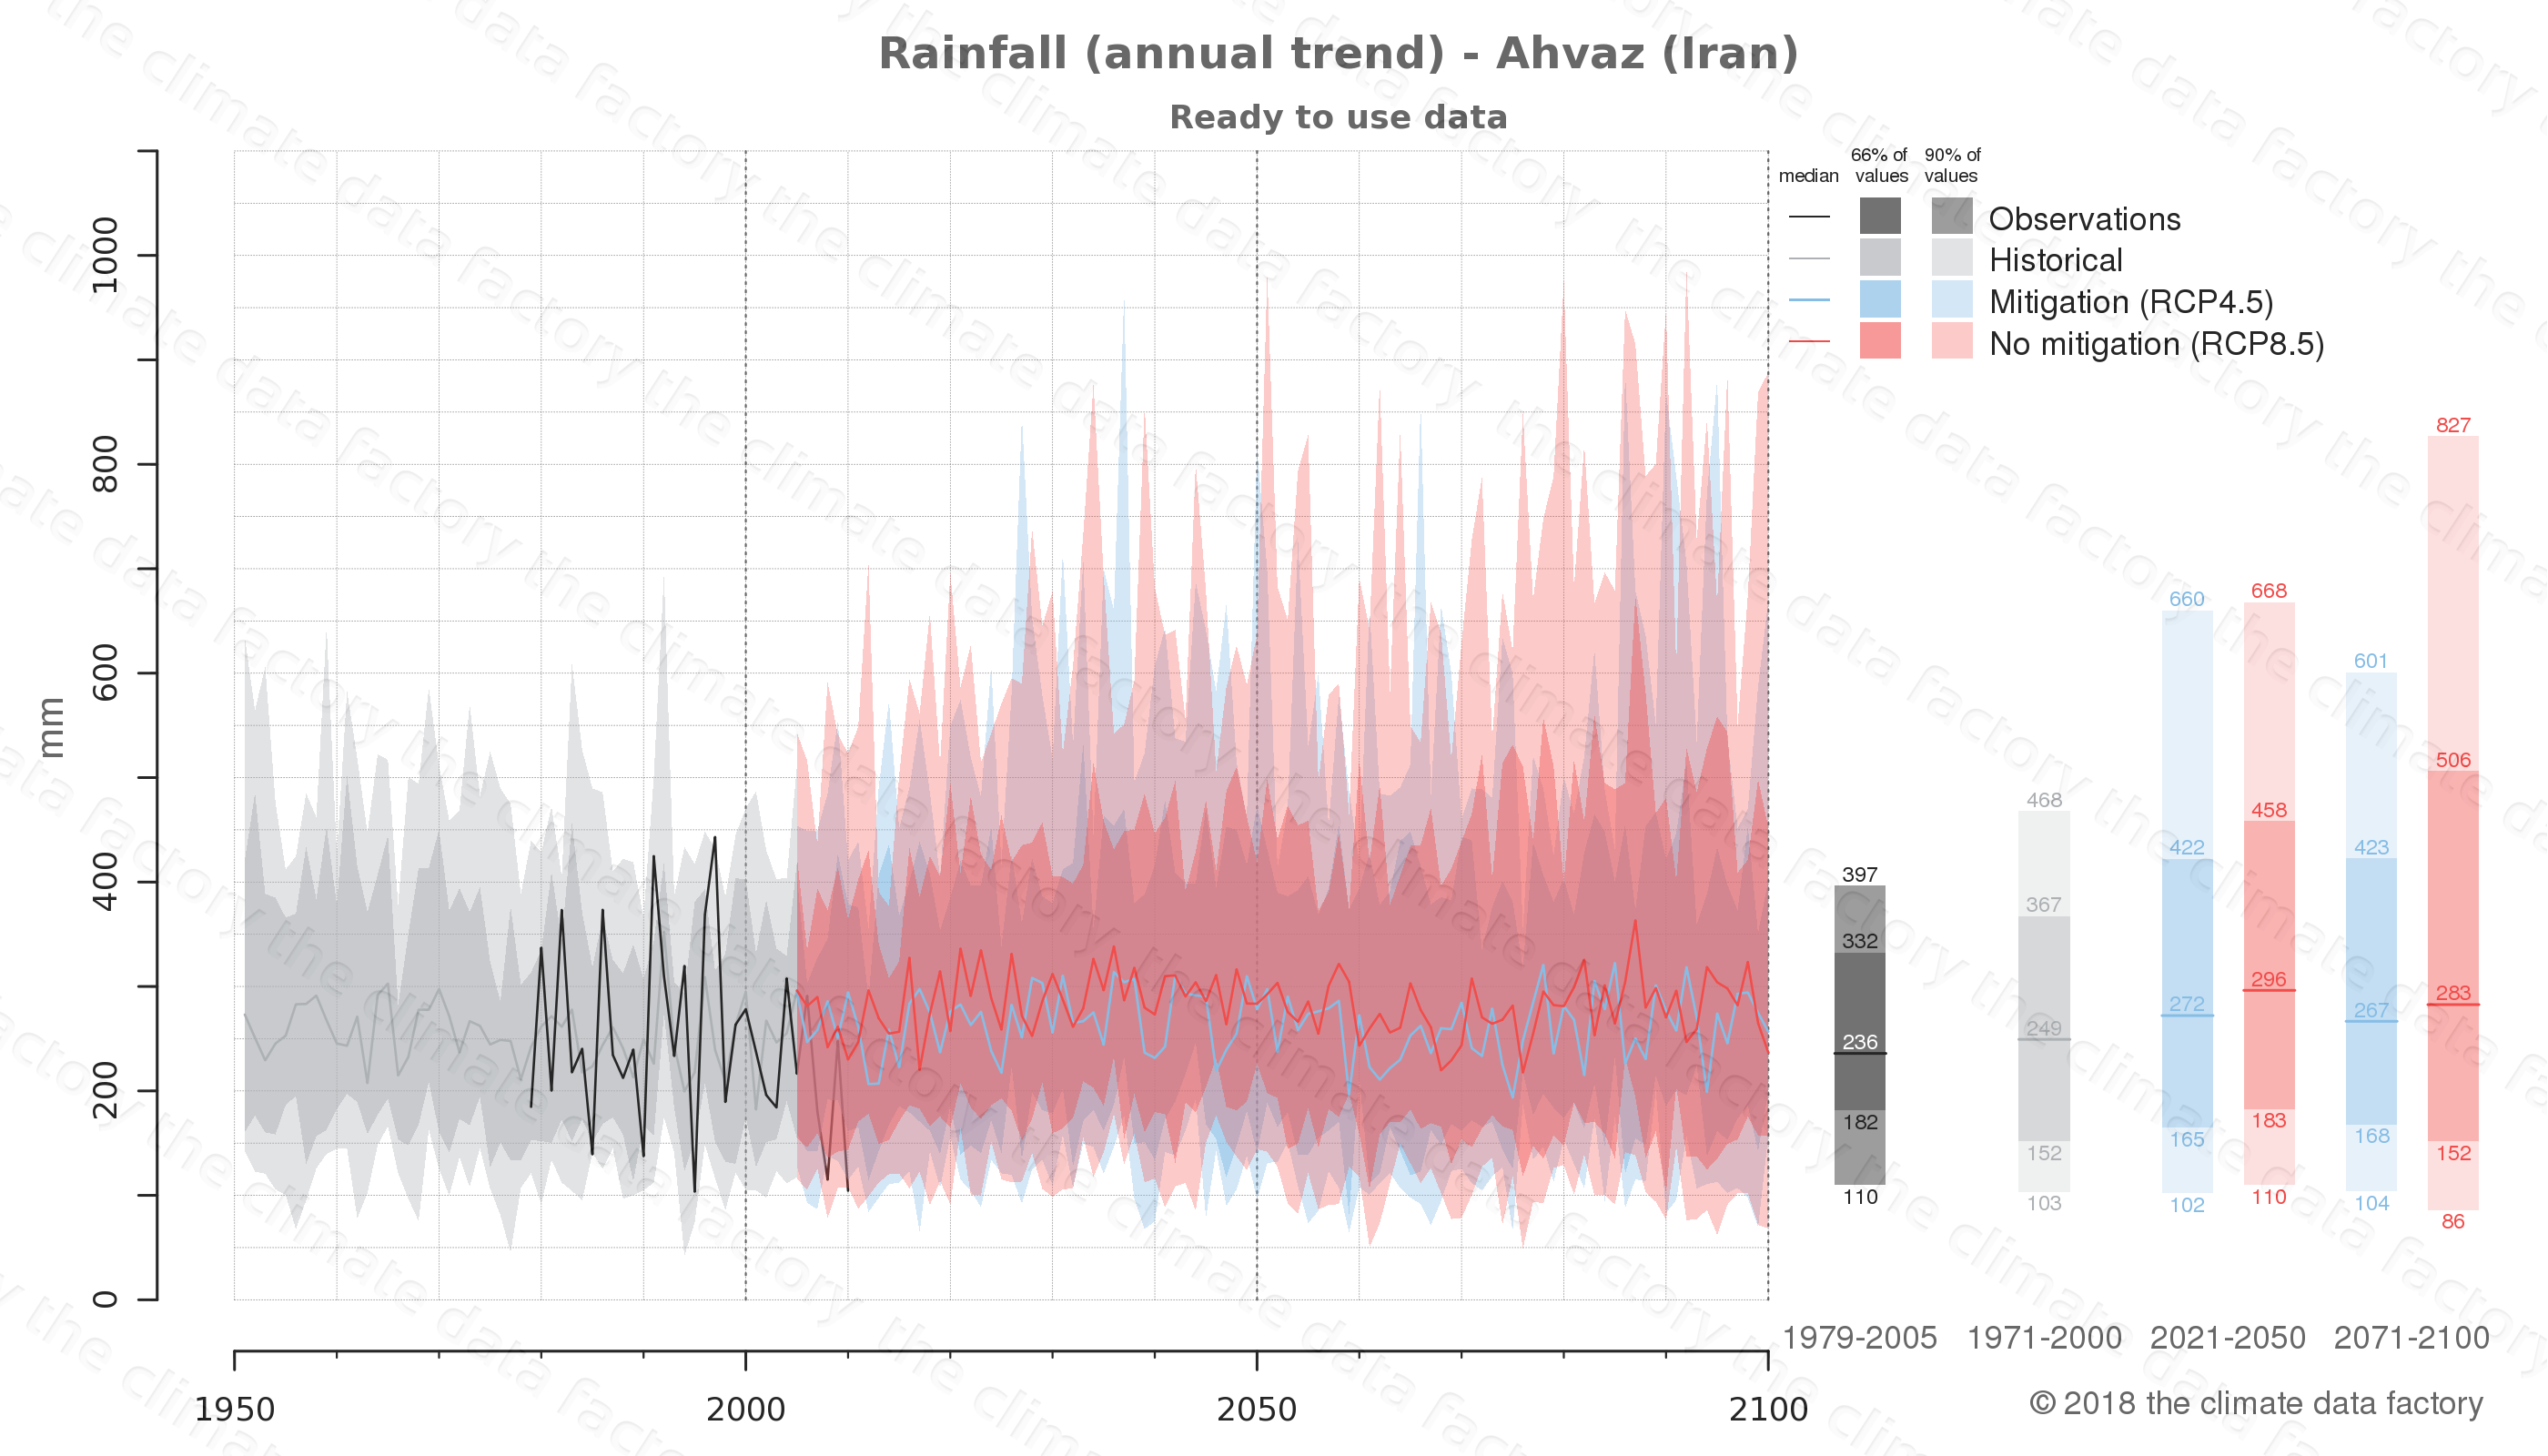 climate change data policy adaptation climate graph city data rainfall ahvaz iran